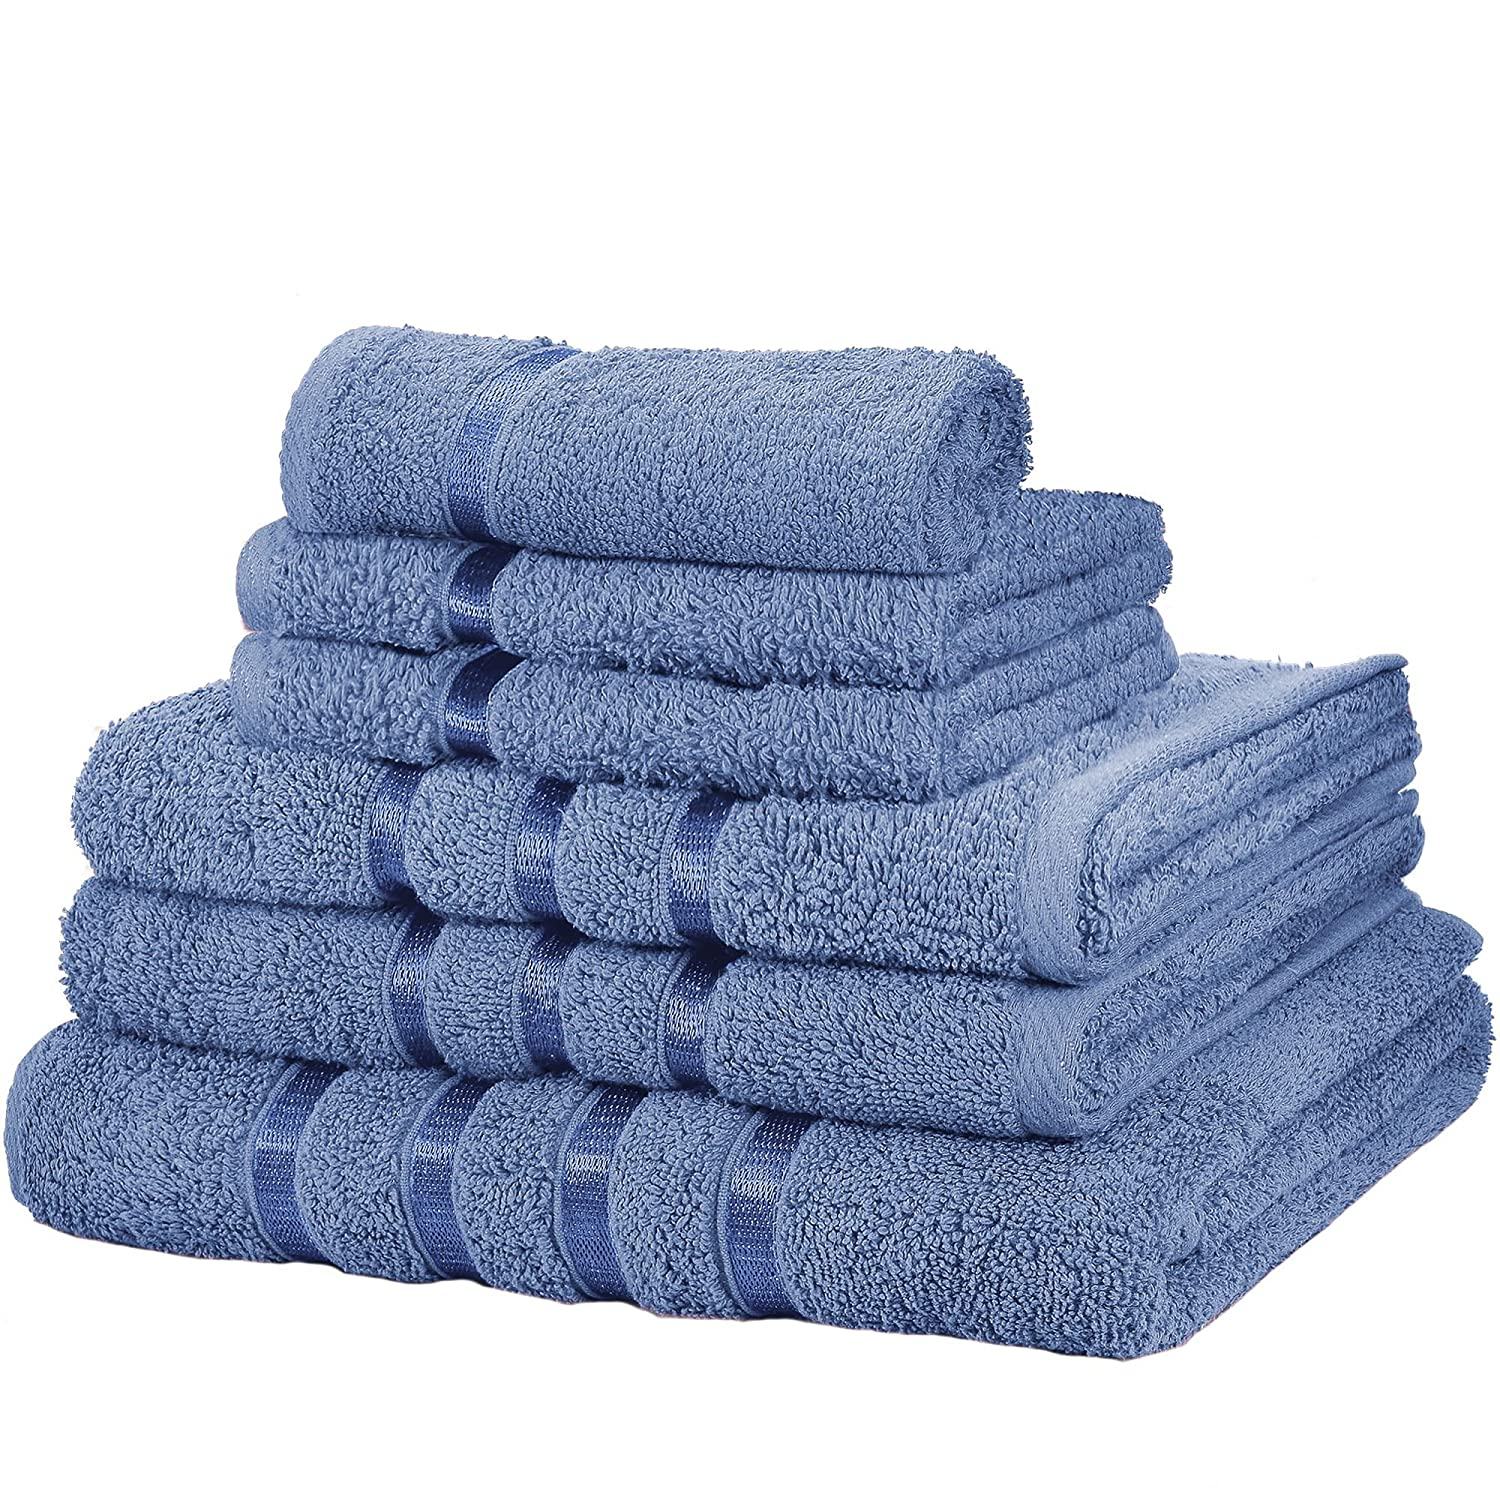 BLUE 6 PIECE BATHROOM BALE TOWEL SET SOFT SATIN BATH 100% EGYPTIAN COTTON TOWELS Evelyn Living